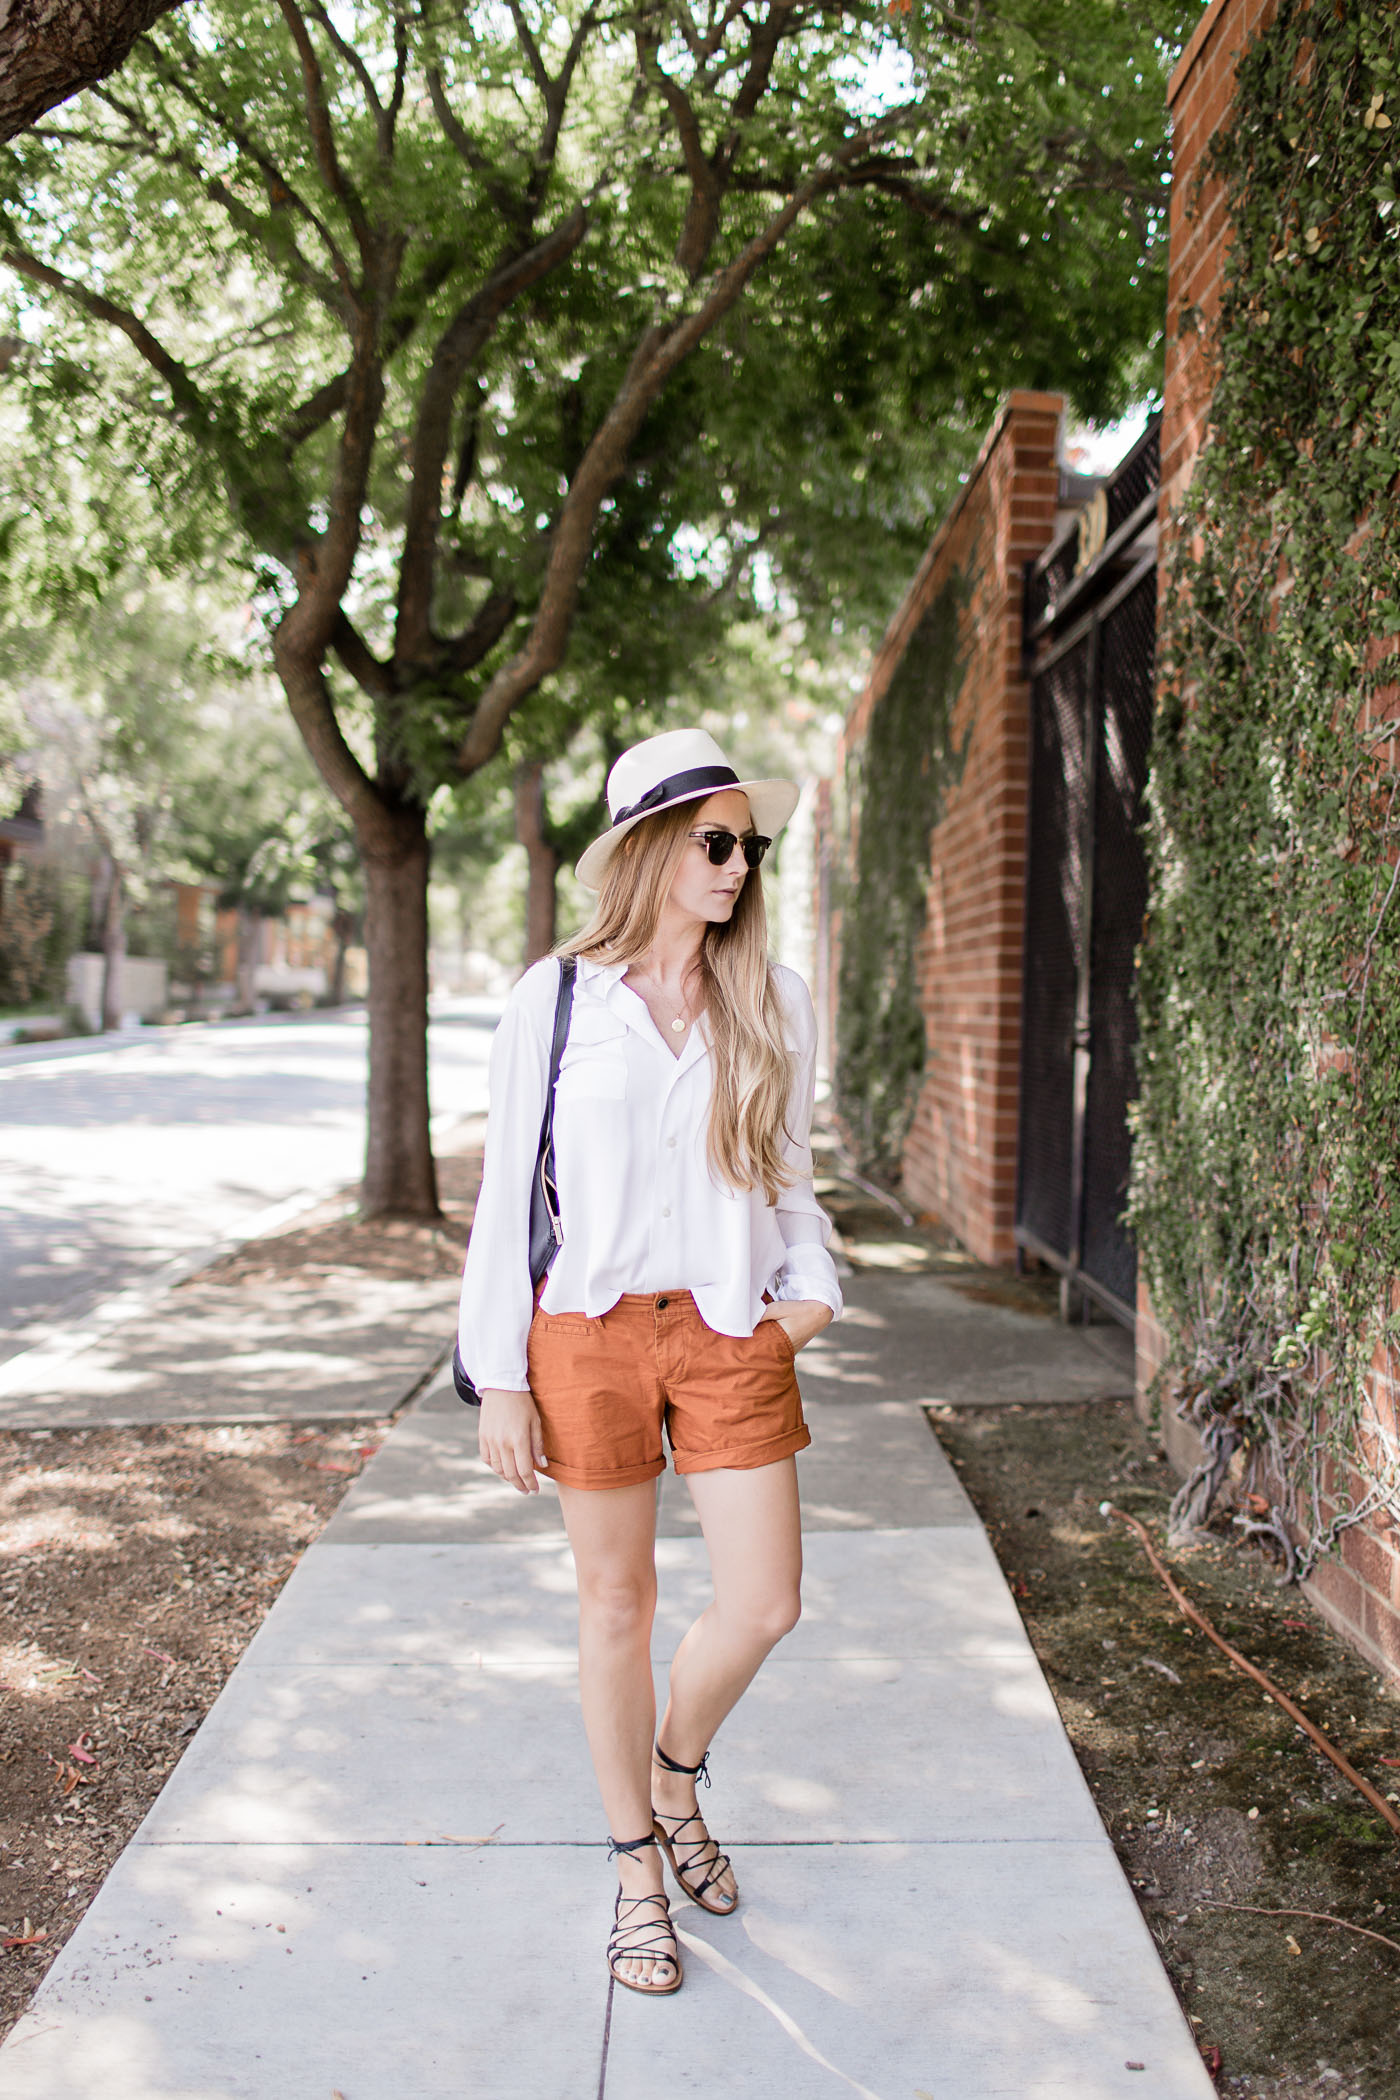 Summer to Fall outfit, featuring Cuyana, Ray-Ban, Maps by A.Jaffe, Hope, Old Navy, Ariel Gordon Jewelry, and J.Crew